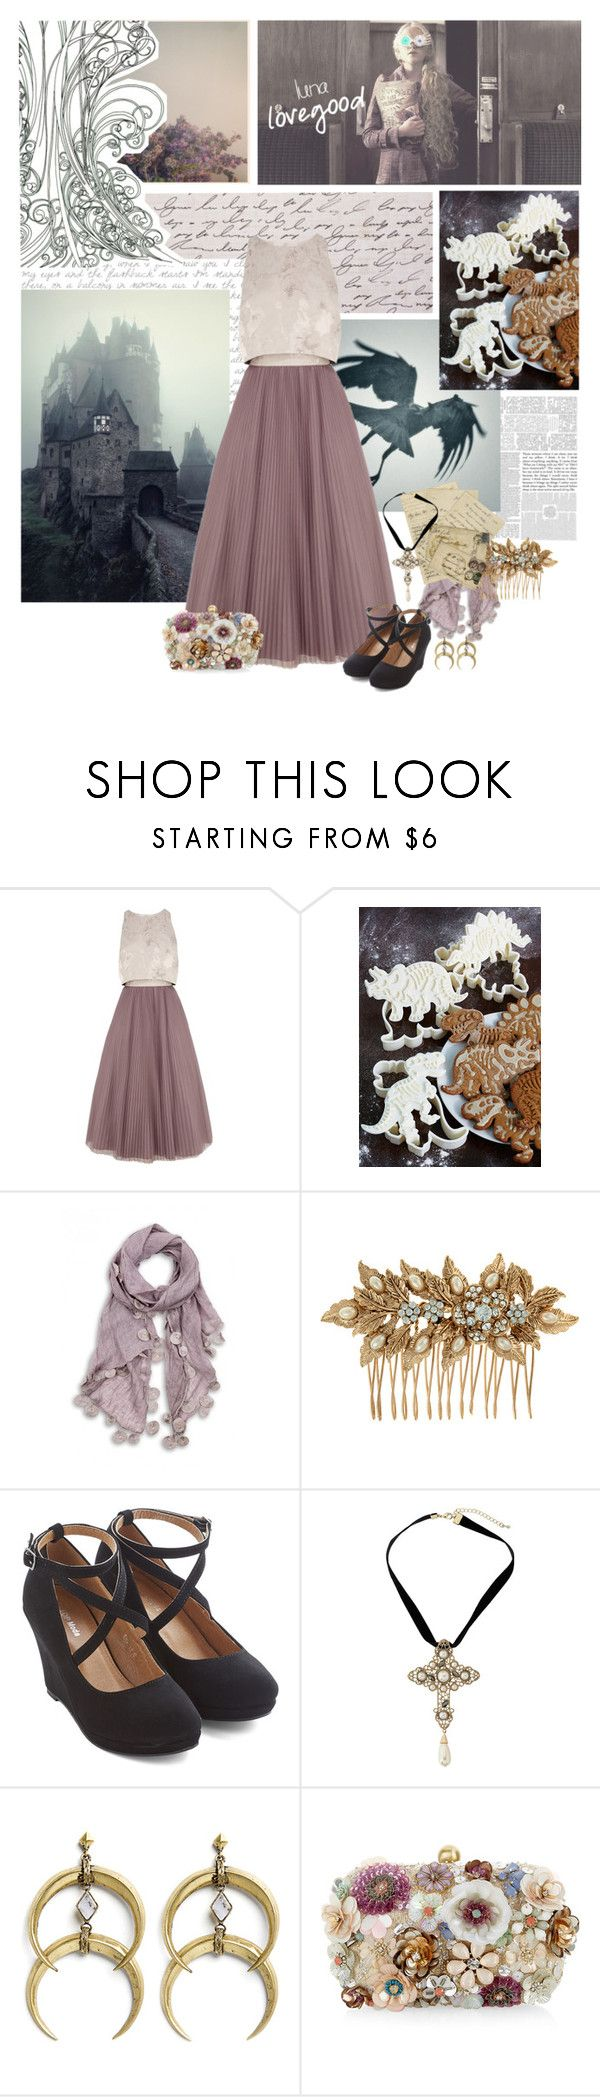 """Luna Lovegood"" by summersdream ❤ liked on Polyvore featuring Jardin, Luna, Coast, Accessorize, Dorothy Perkins, A Peace Treaty, harrypotter and lunalovegood"